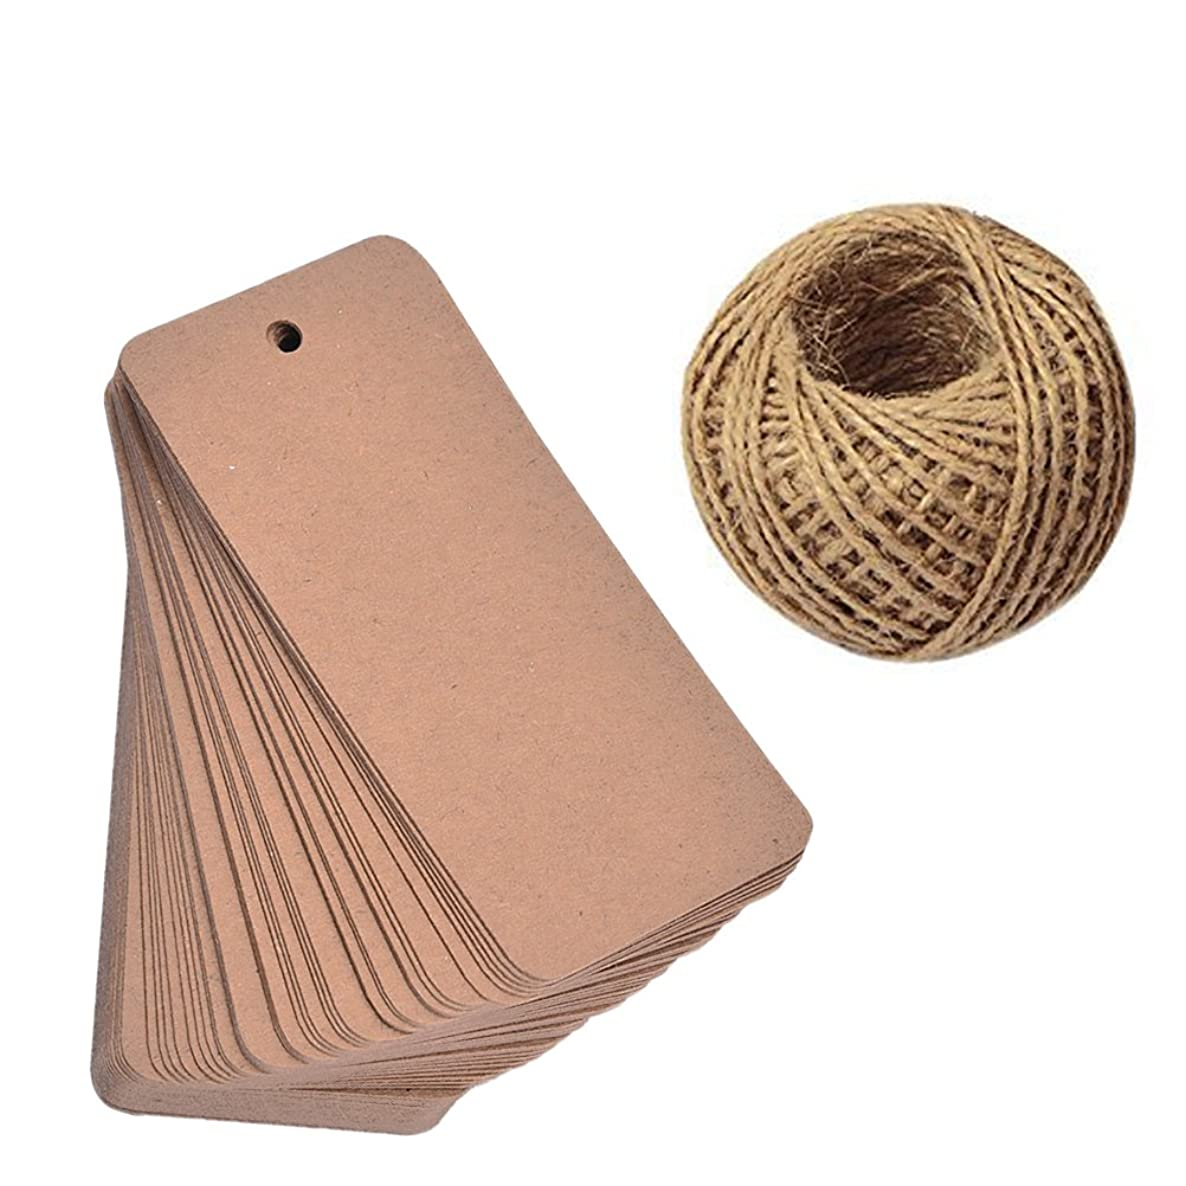 Lwestine 100 Feet Natural Jute Twine and 100PCS Brown Retangle Kraft Paper Gift Tags for Crafts & Price Tags Lables